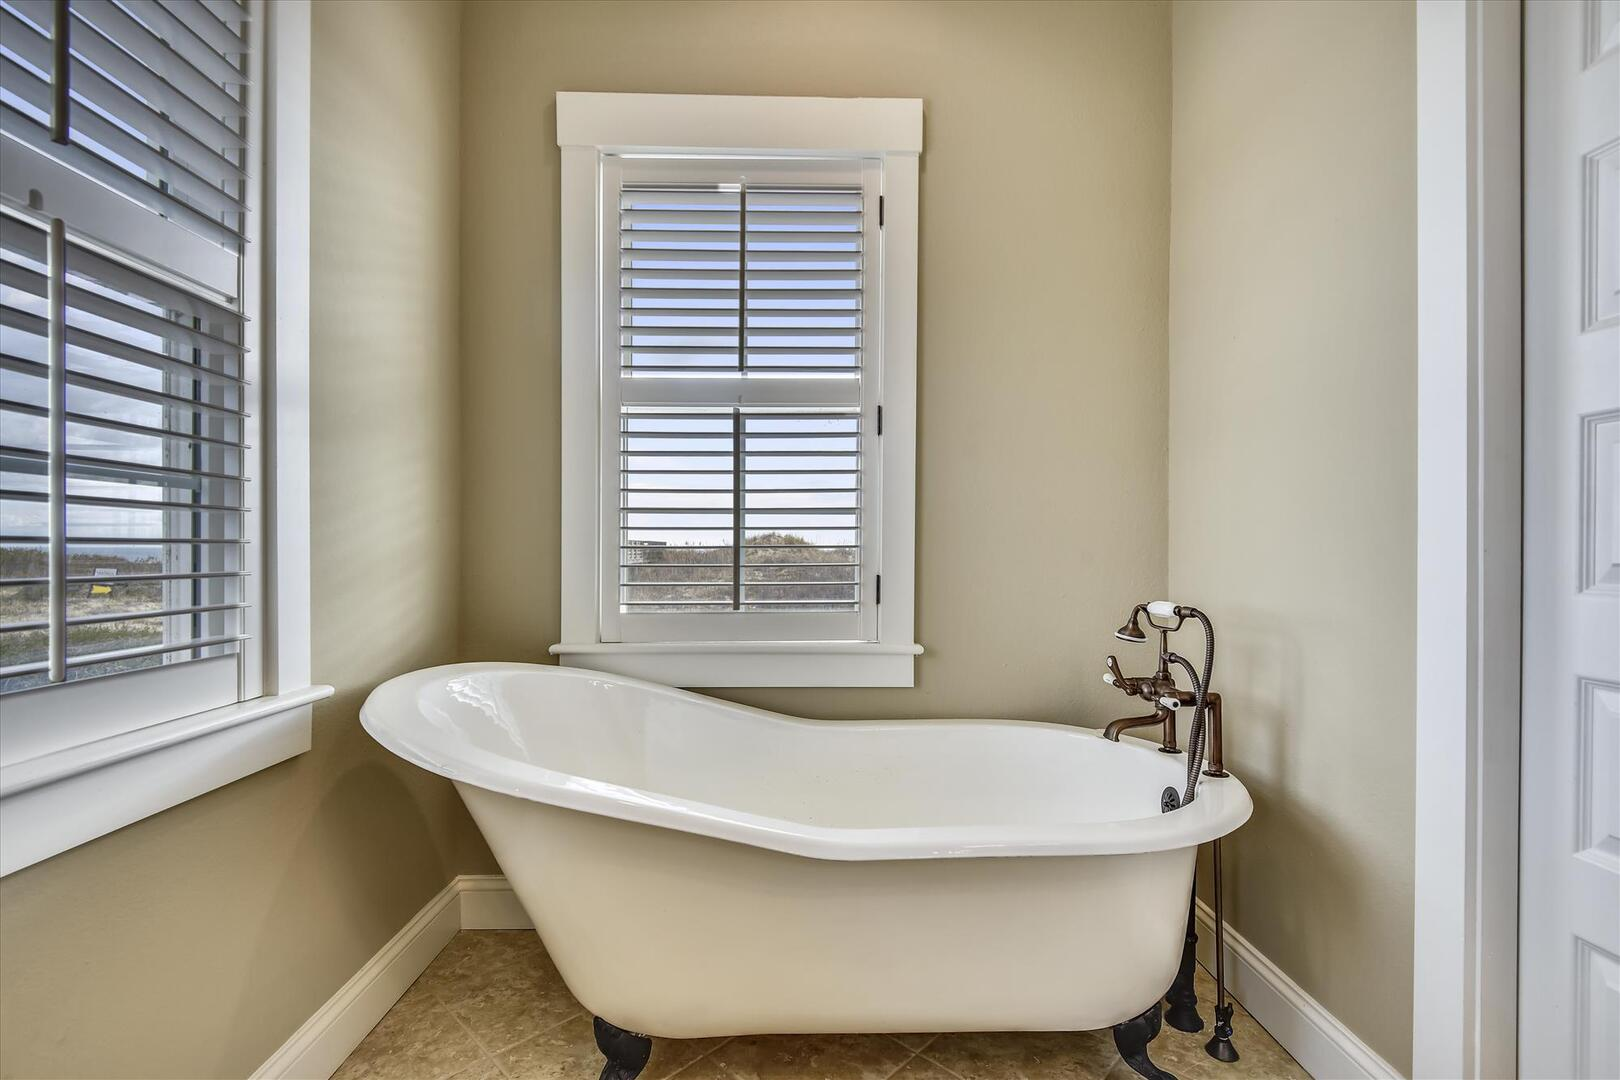 Bridal Suite,Bridal Suite- Tub,